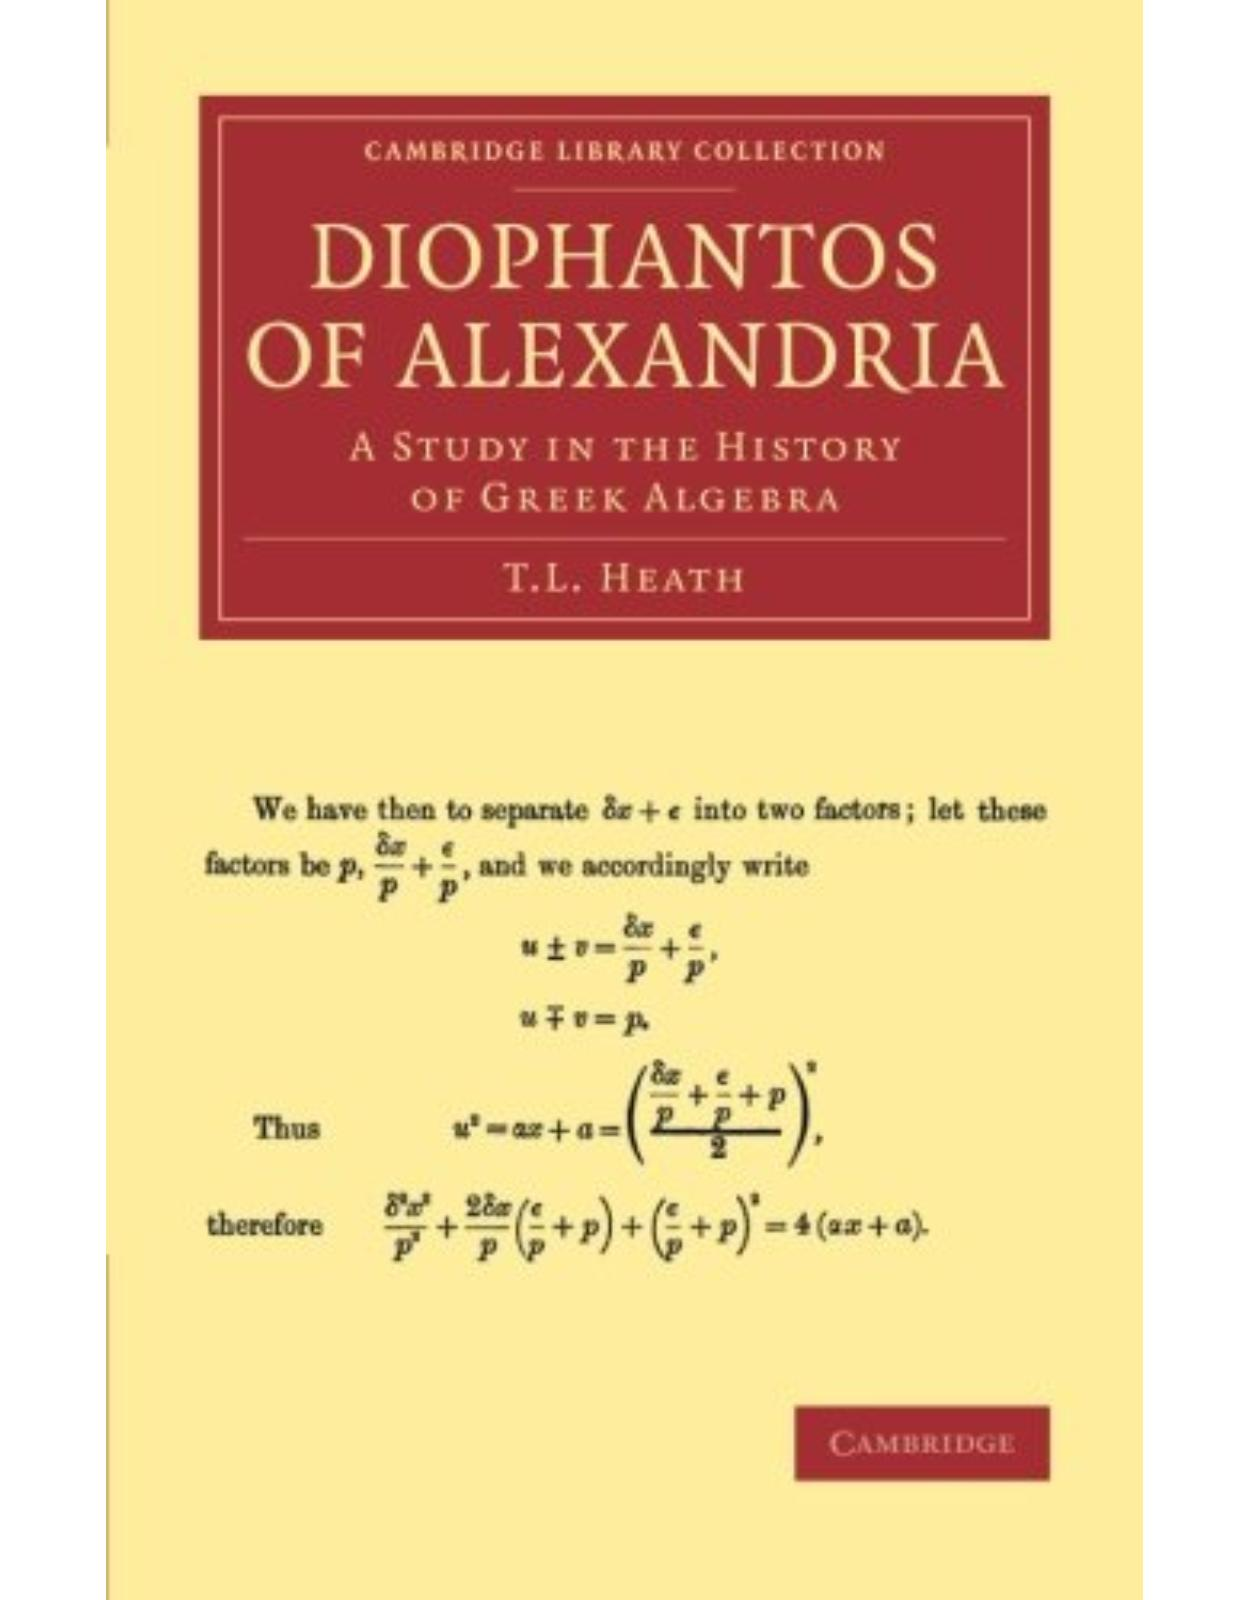 Diophantos of Alexandria: A Study in the History of Greek Algebra (Cambridge Library Collection - Classics)